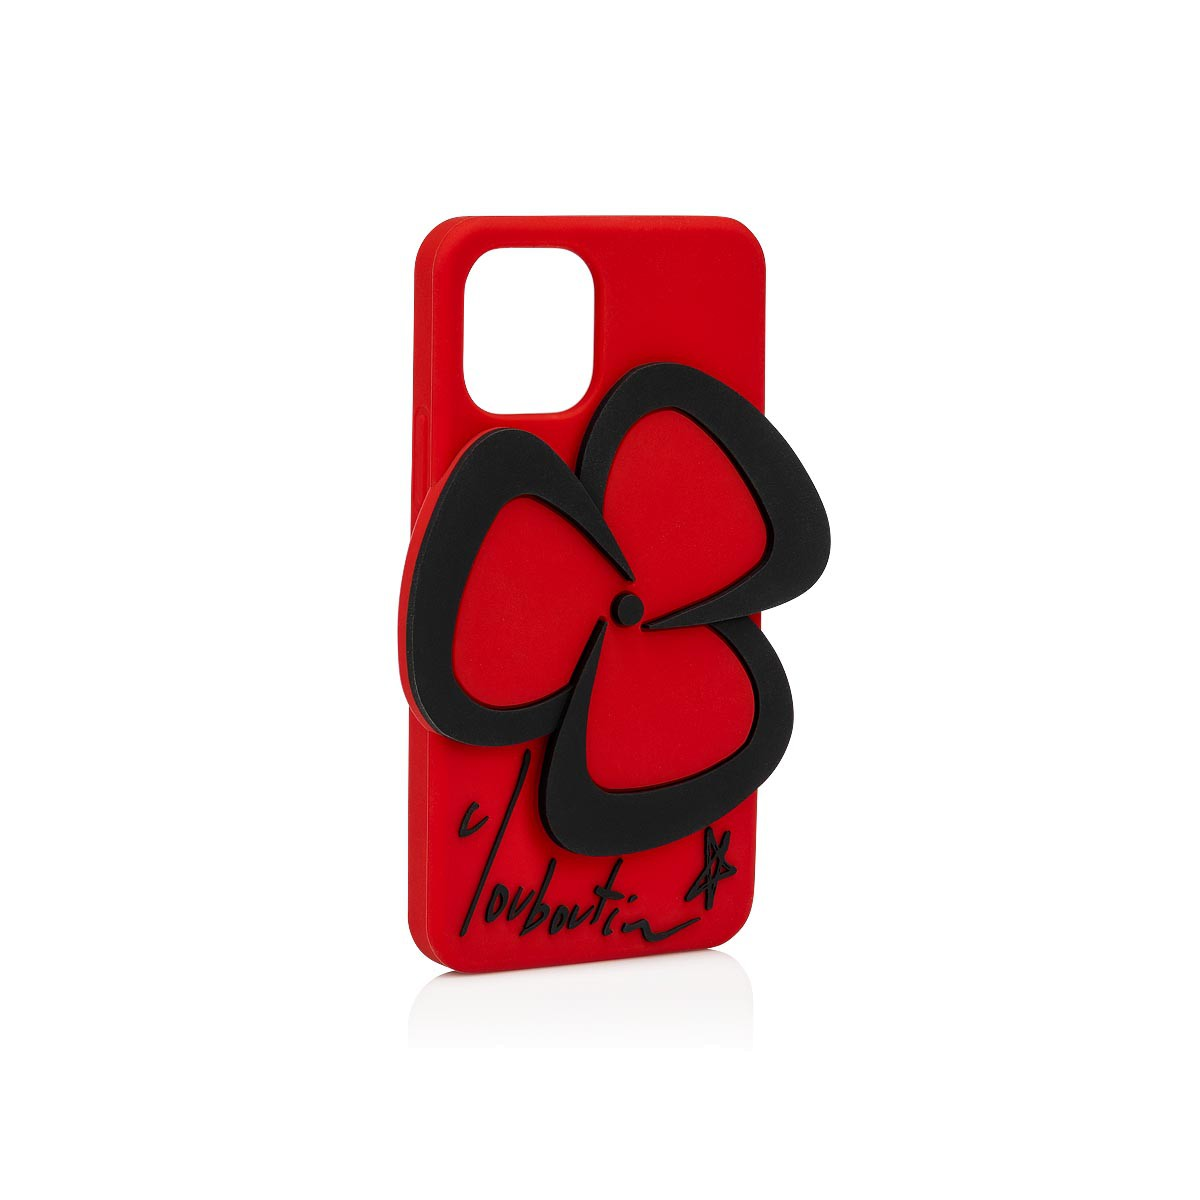 Small Leather Goods - Pensée Case Iphone 11 Pro - Christian Louboutin